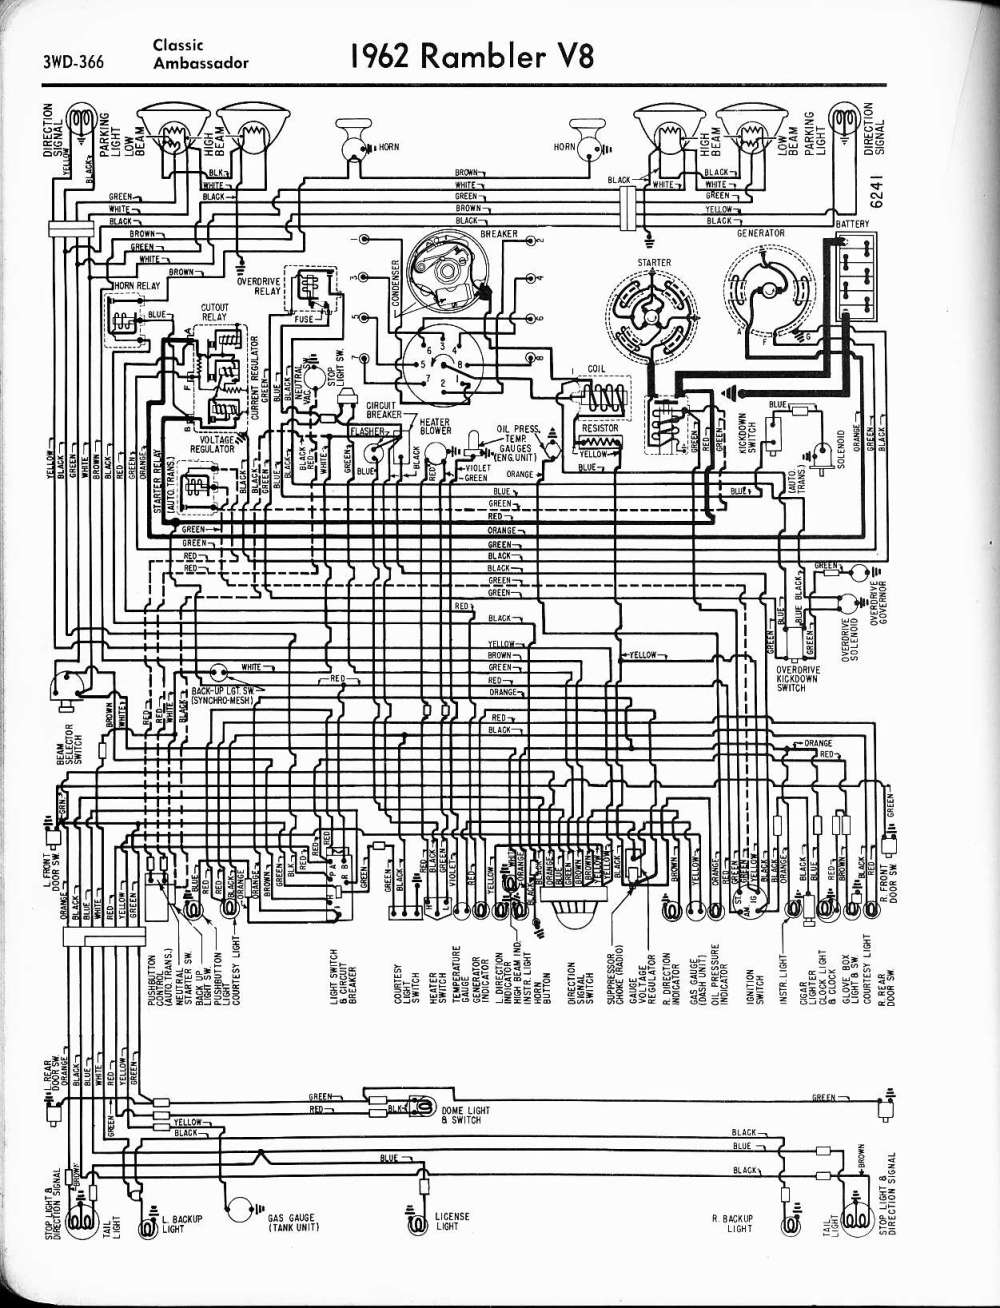 medium resolution of amc 360 wiring diagram wiring library amc 304 engine diagram 1962 rambler v8 classic ambassador